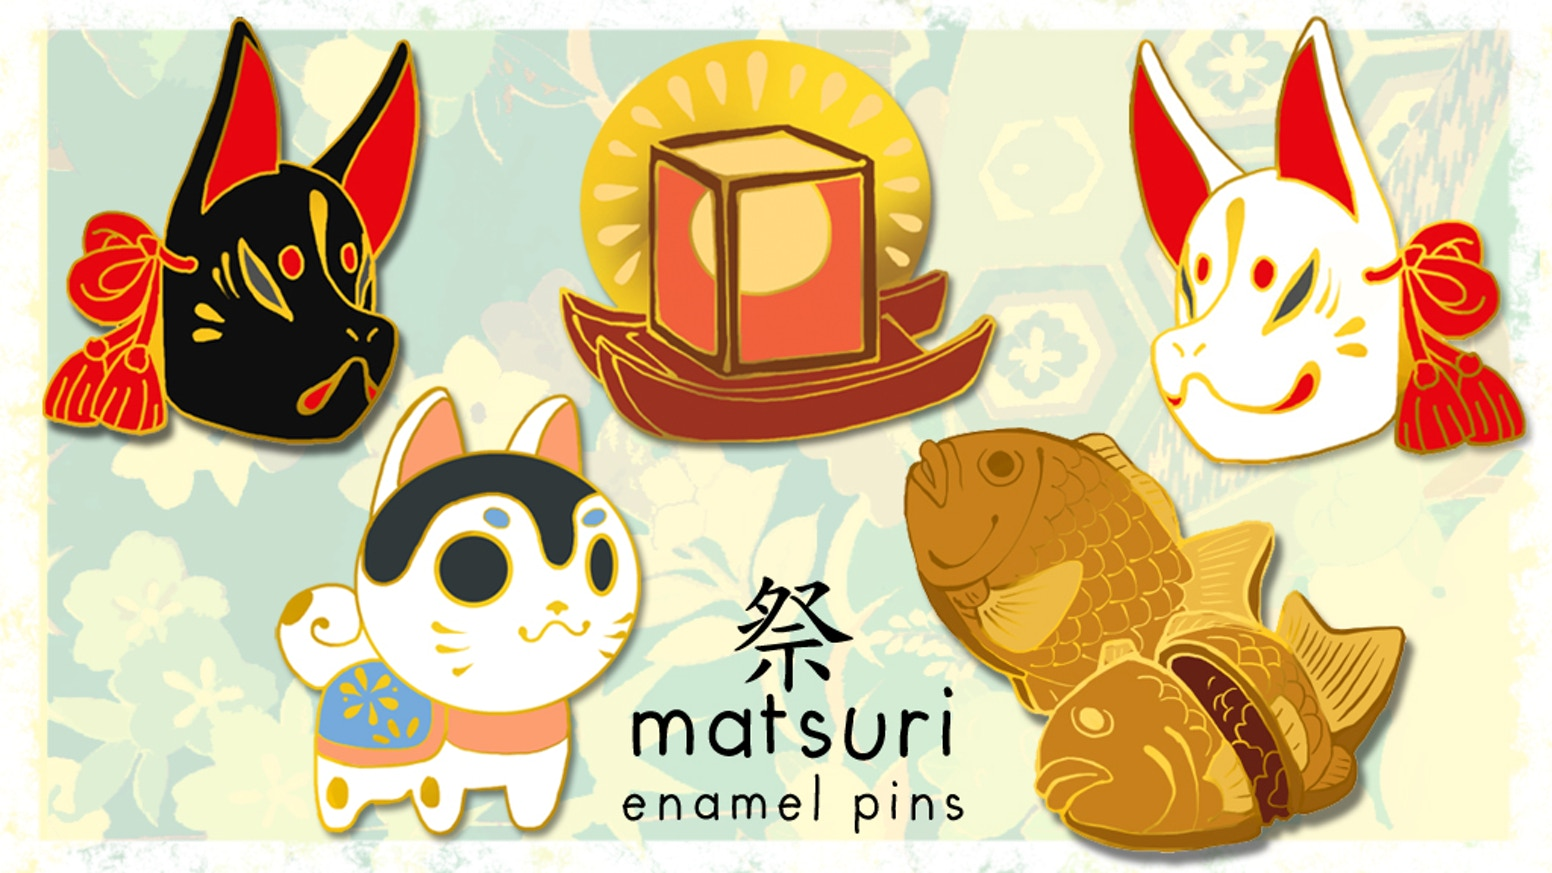 Matsuri (festival) inspired pins to brighten your day and bring you good luck!